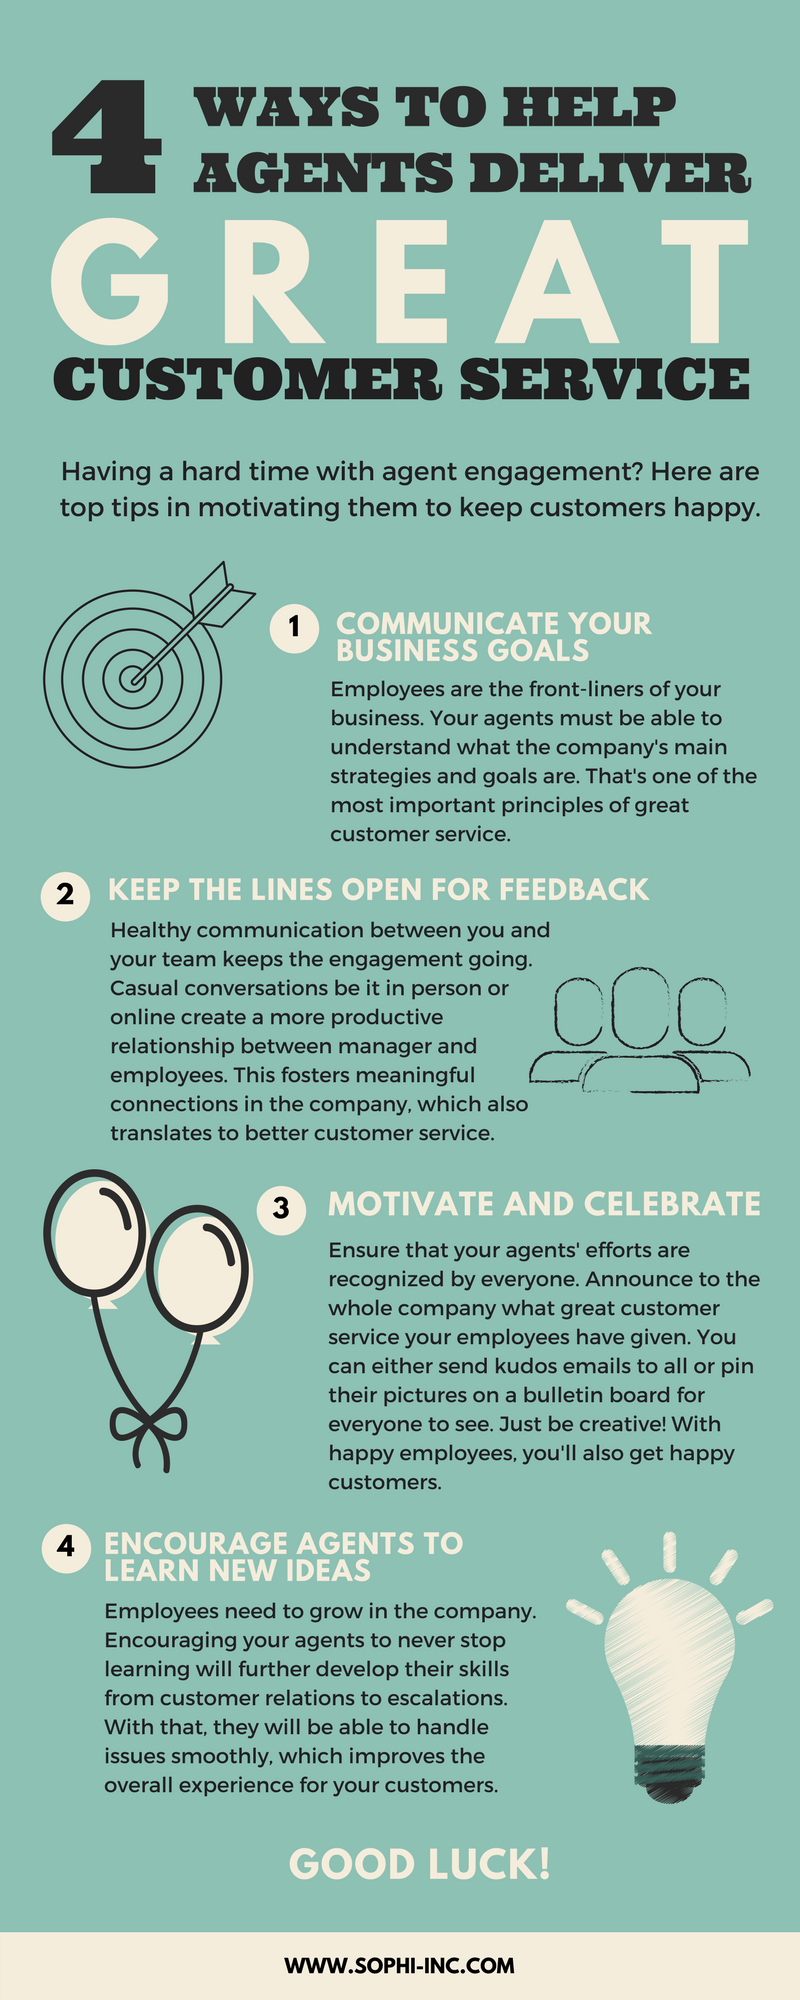 4 Ways to Help Agents Deliver Great Customer Service.png